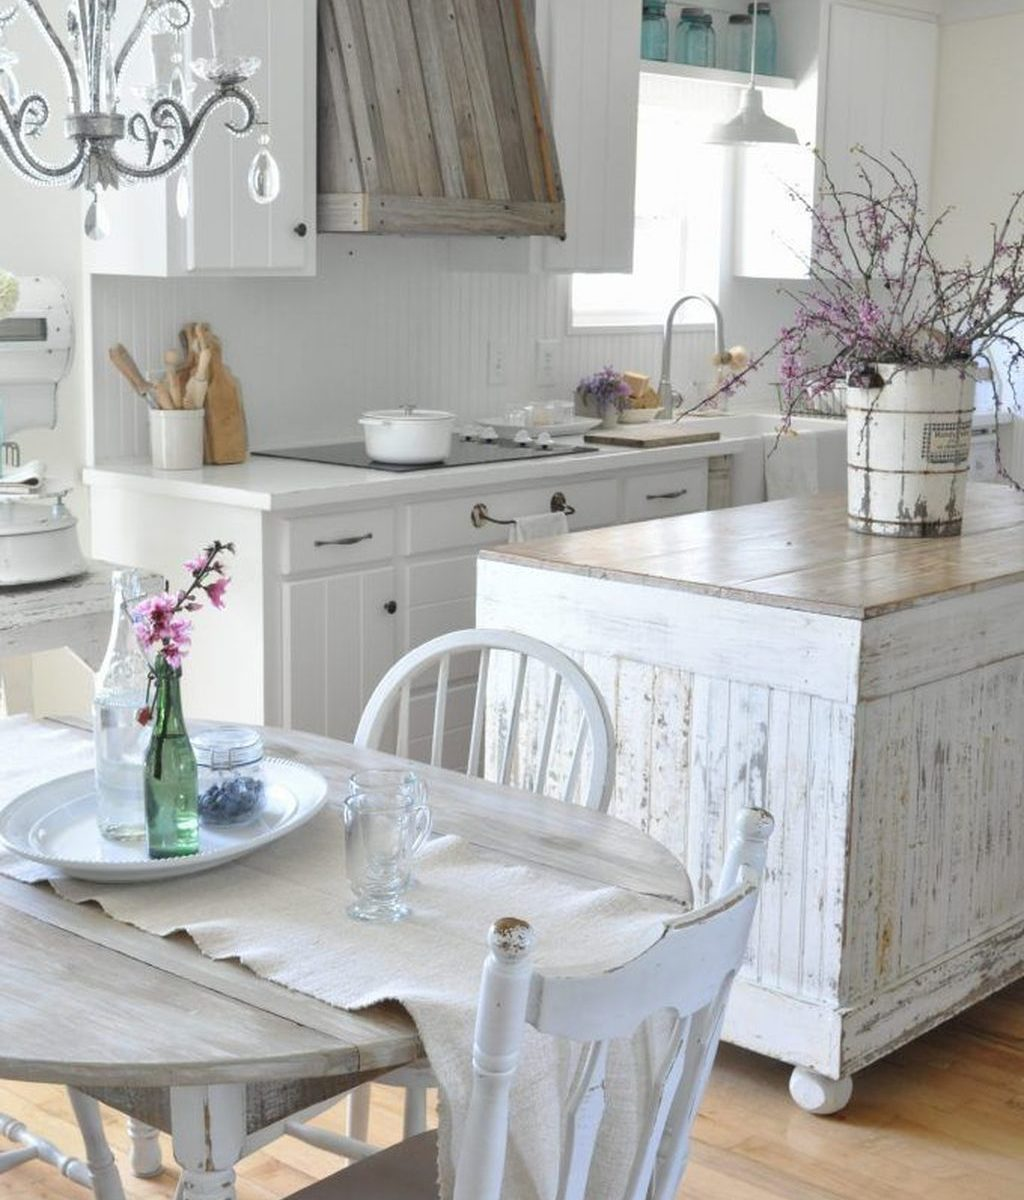 Inspiring Country Kitchen Decor Ideas You Should Copy 19